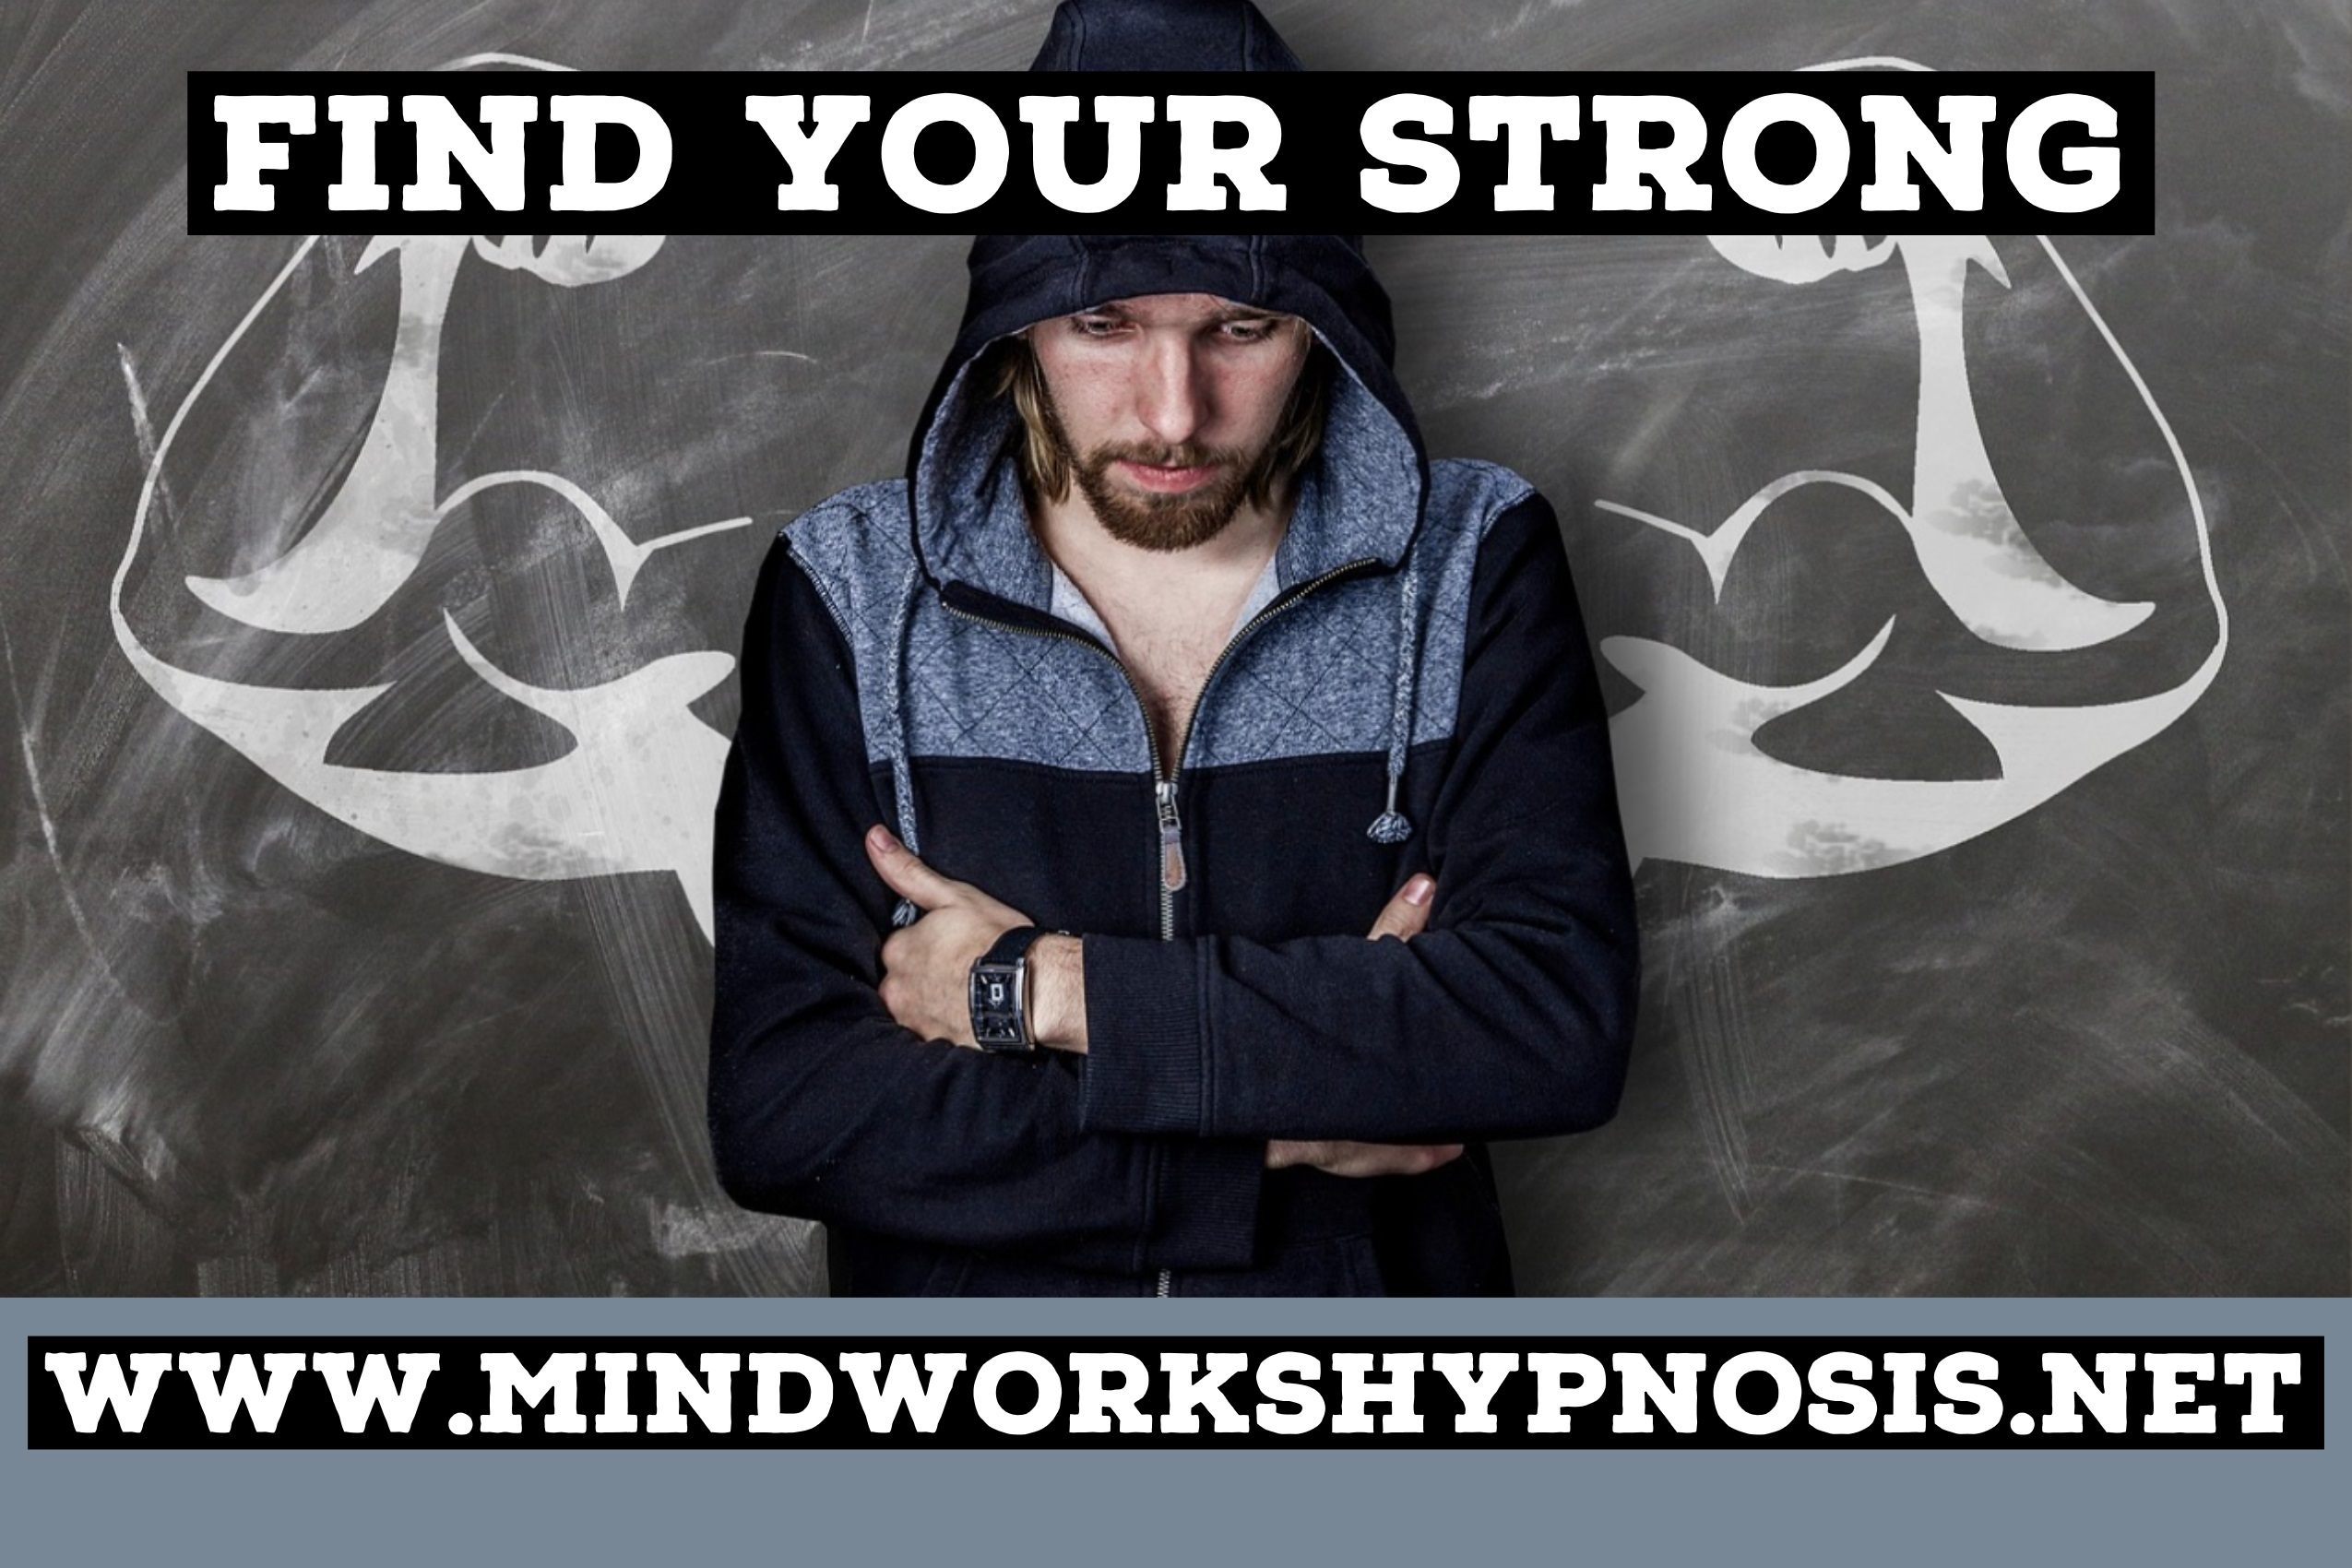 Find your inner strength with Mindworks Hypnosis & NLP